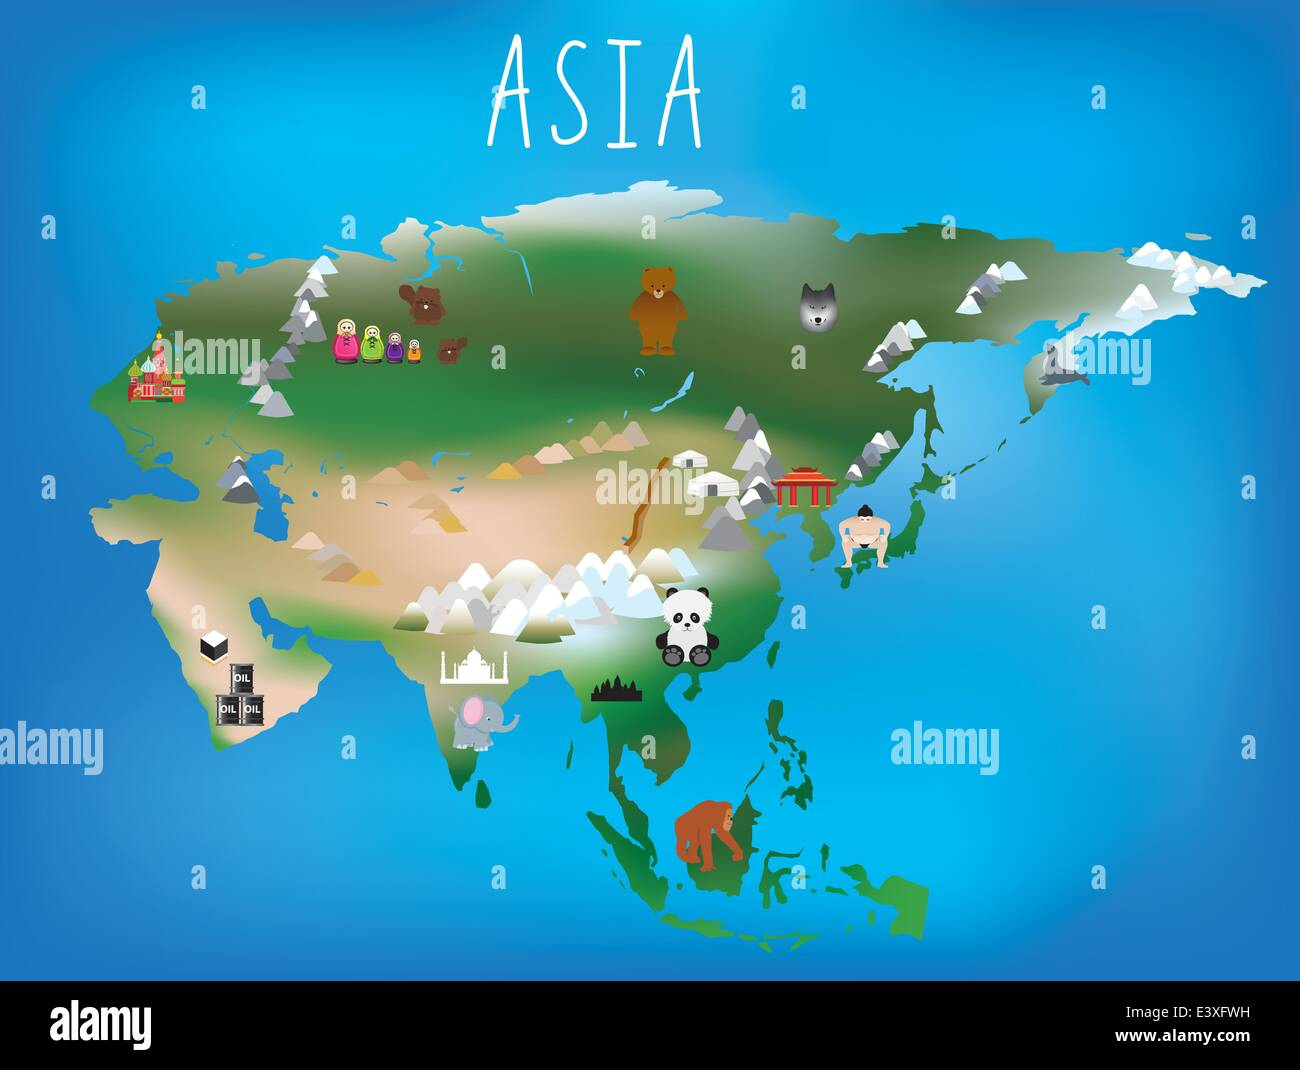 Www Jolie Carte Com Cute Illustrated Map Of Asia With Space To Add Country Names In